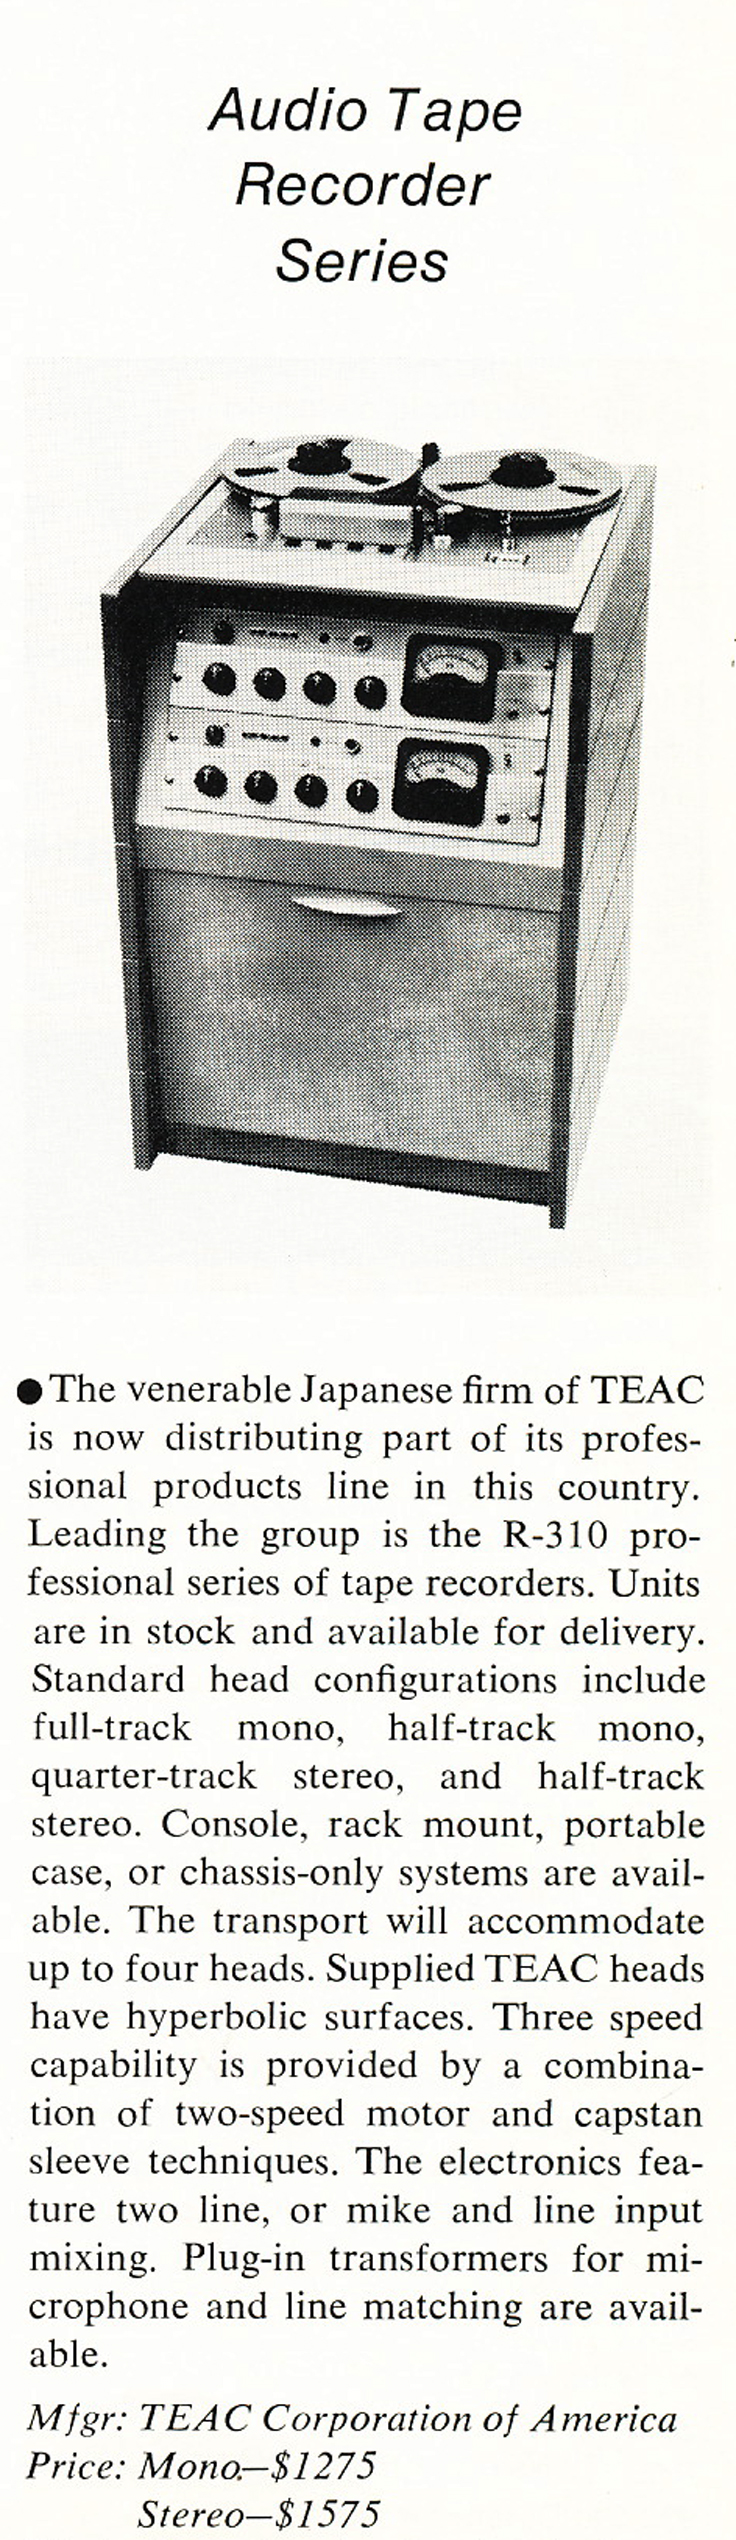 1968 Teac ad for the R-310 professional  open reel tape recorder in the Reel2ReelTexas.com vintage recording collection